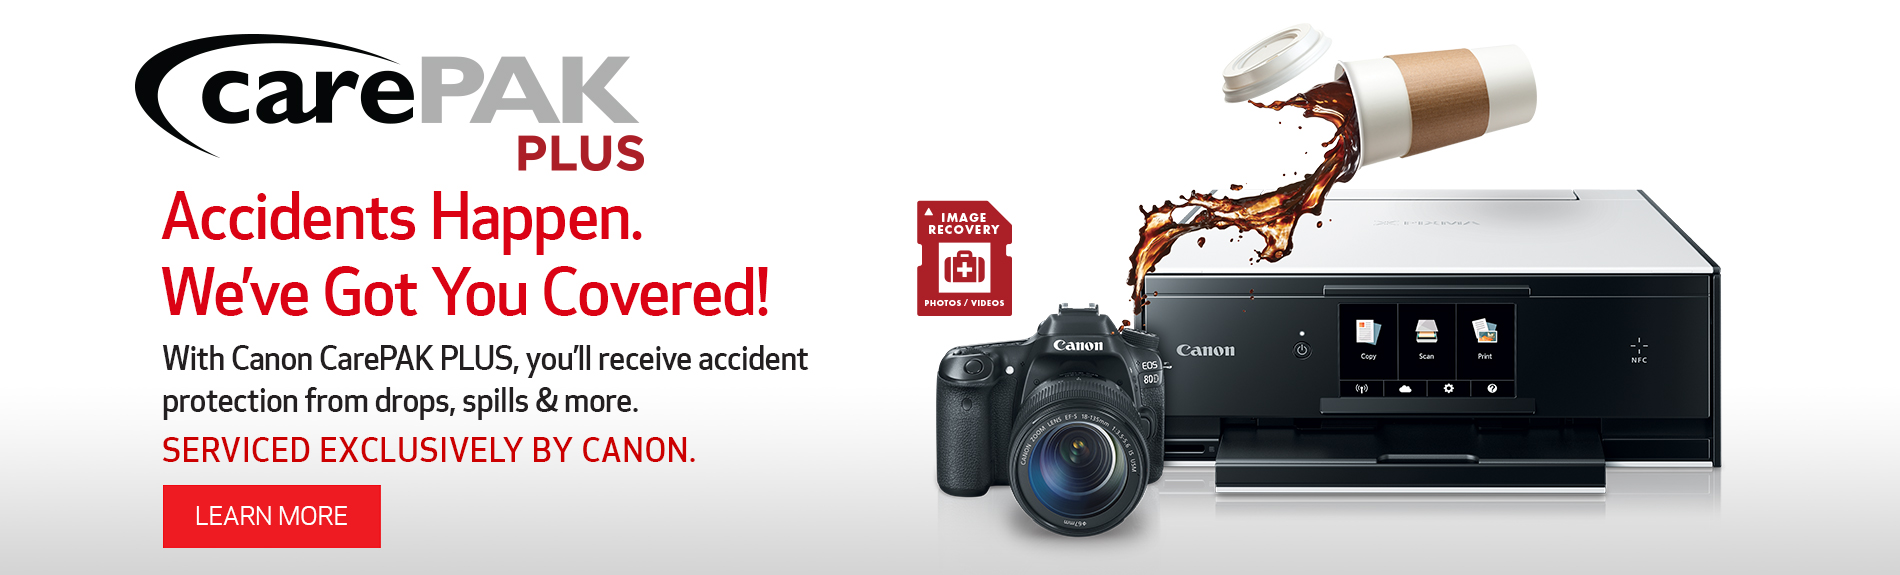 Canon U S A , Inc  | CarePAK PLUS - B&H Photos